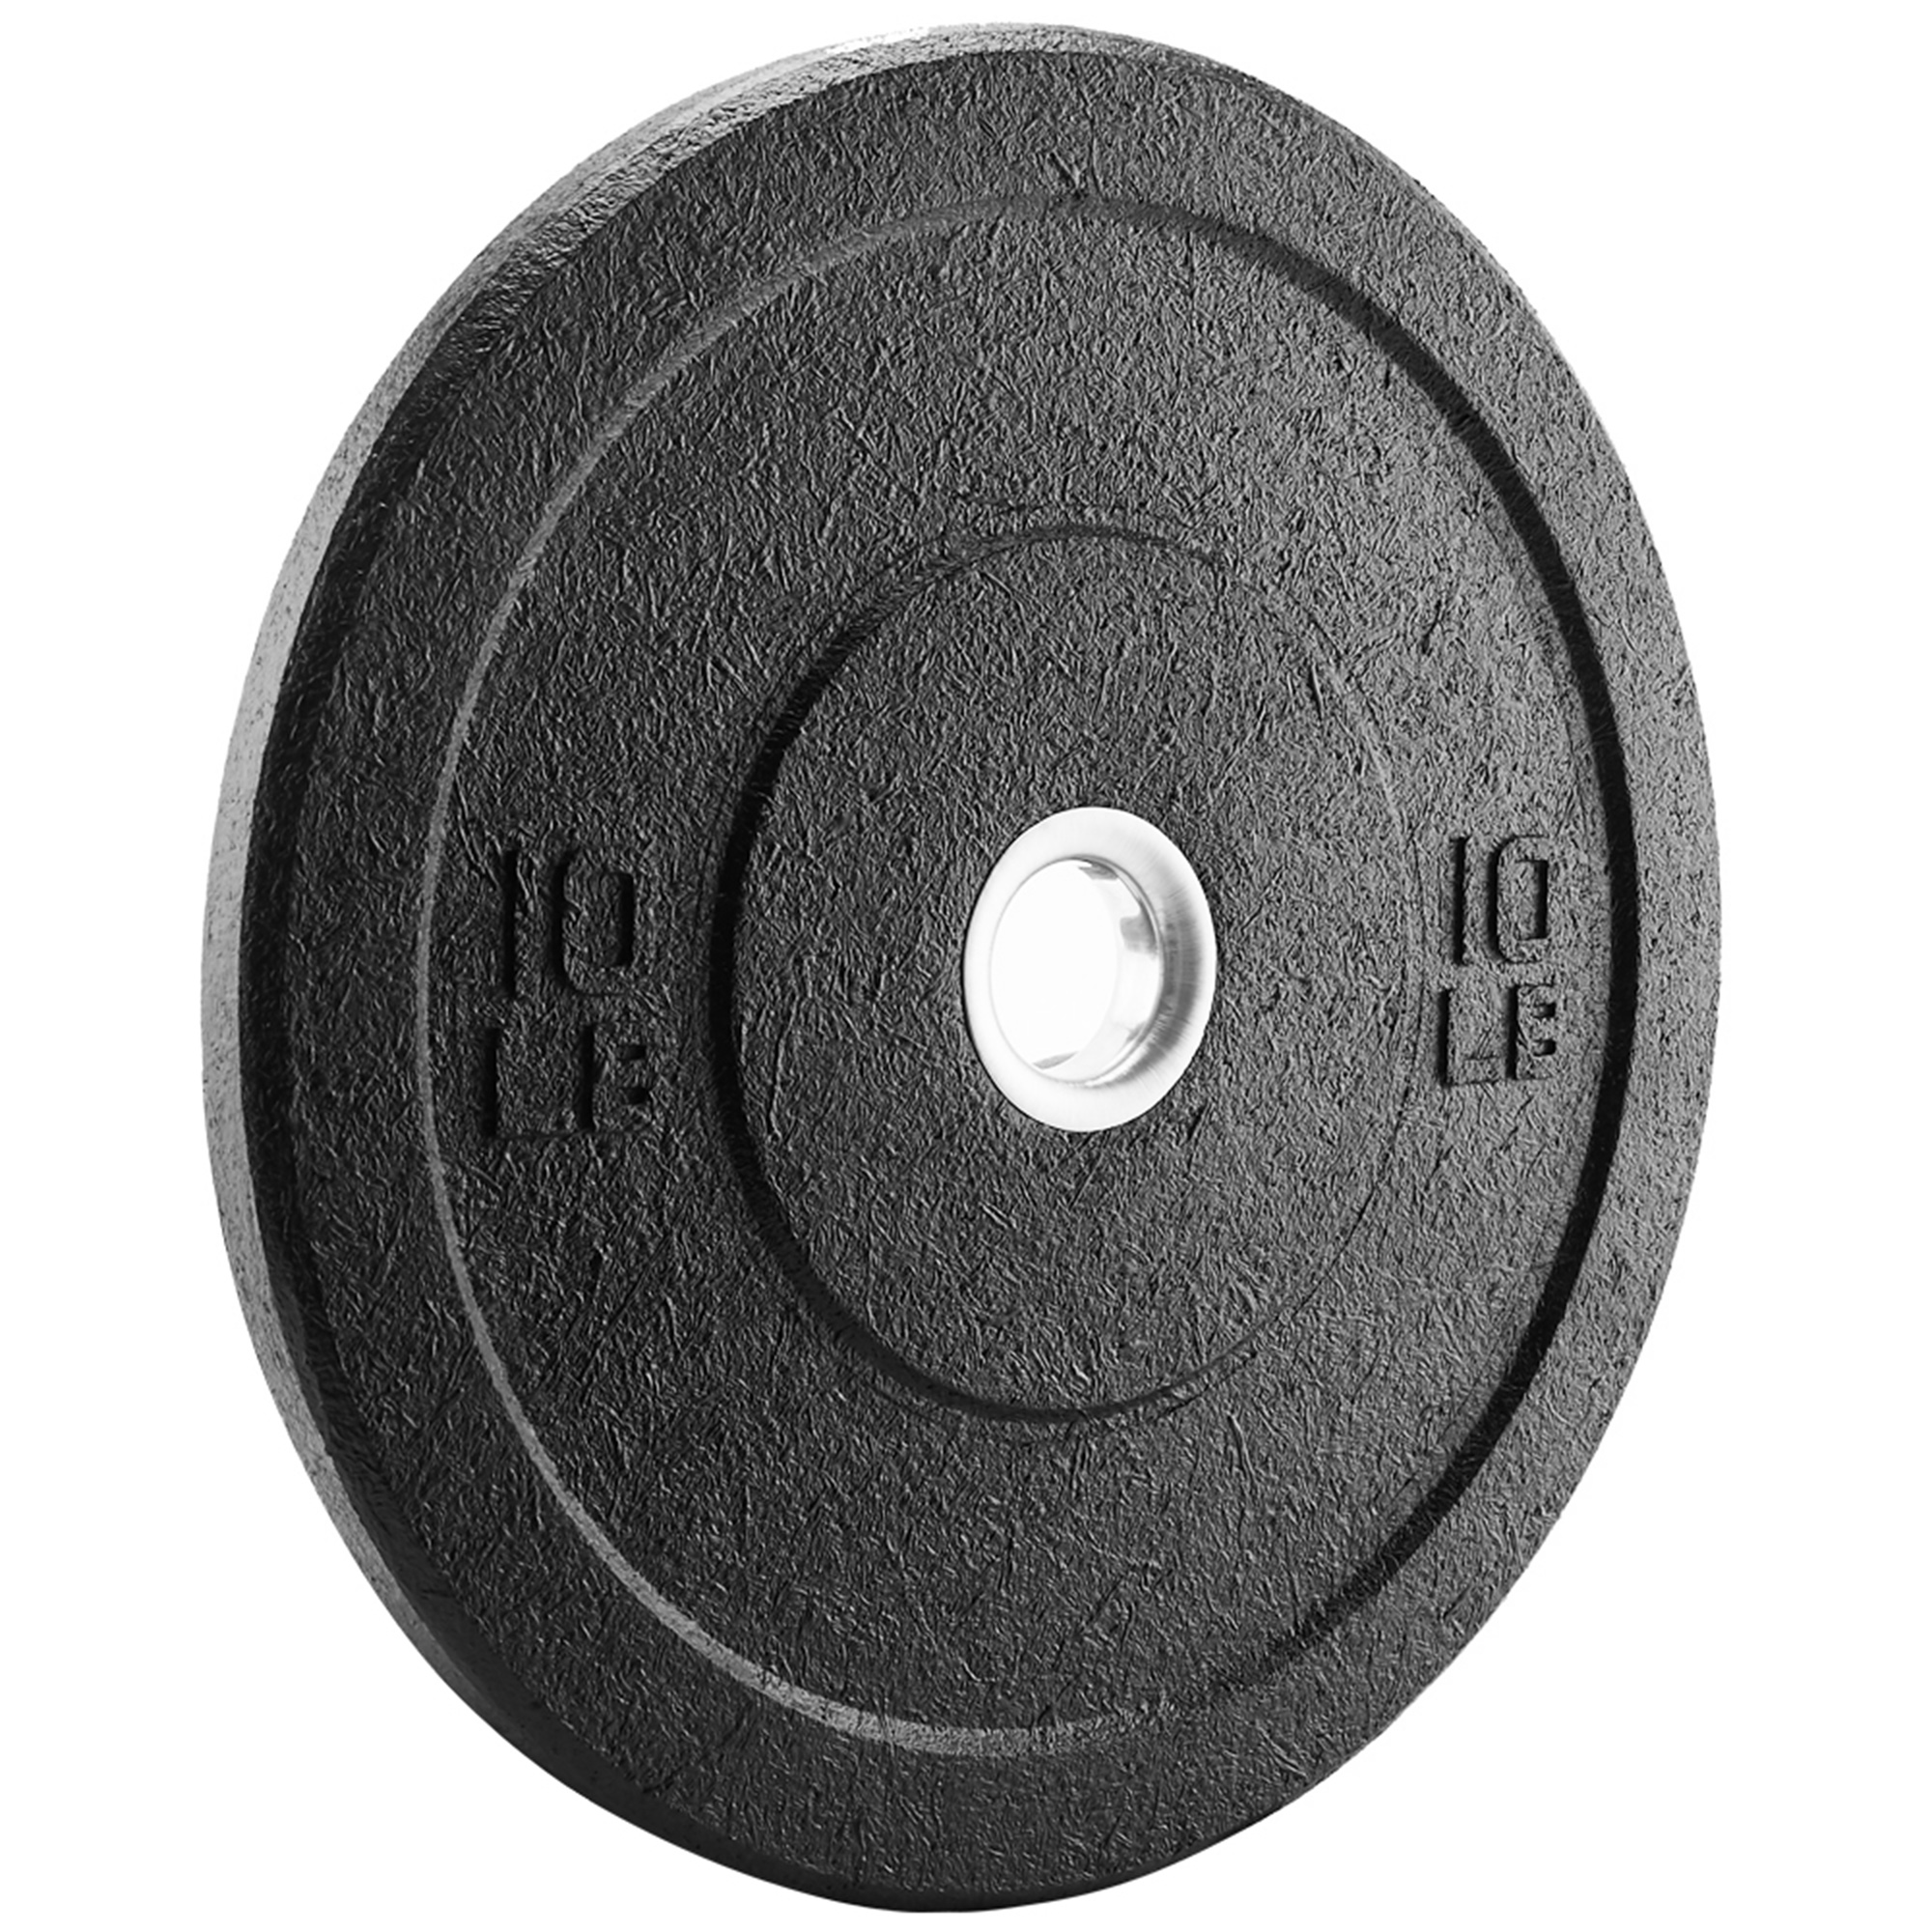 XPRT Fitness Olympic Crumb Rubber Bumper Plate 10 lb  PAIR - Weight Lifting  Plate for Cross Training, Olympic Lifting, Power lifting, Strength &